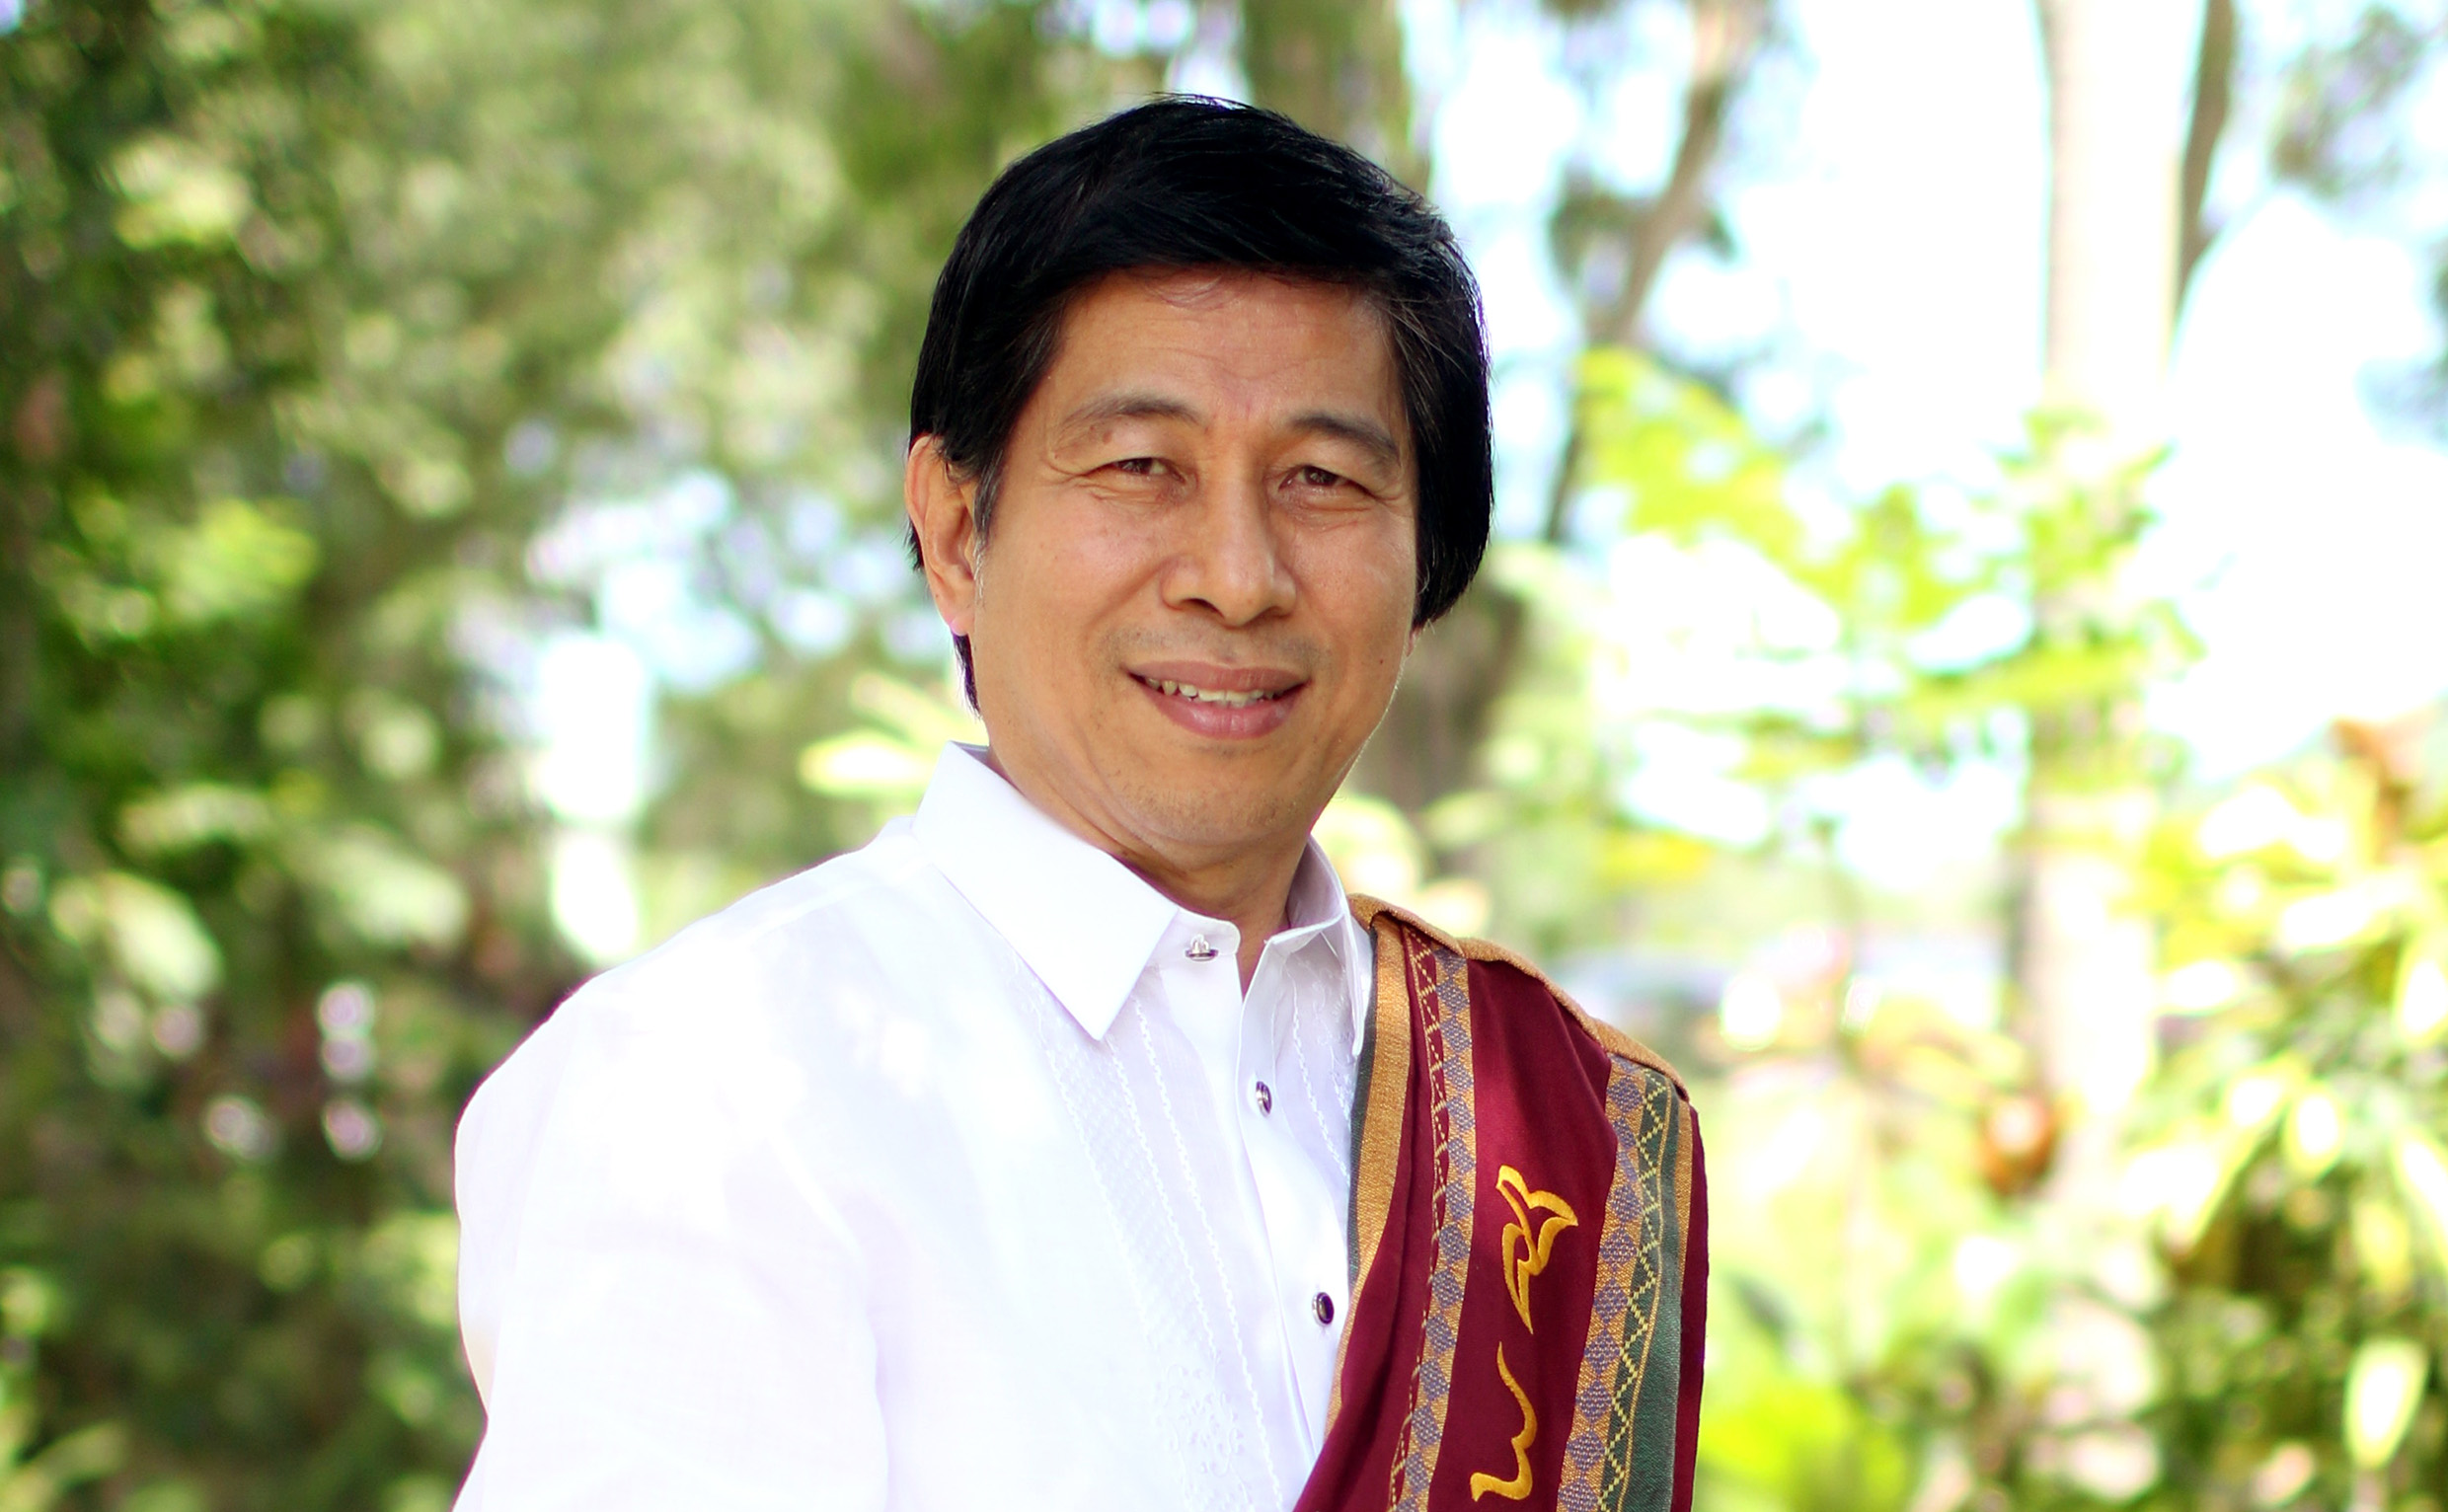 BOR names Atty. Peralta as VC for Student Affairs